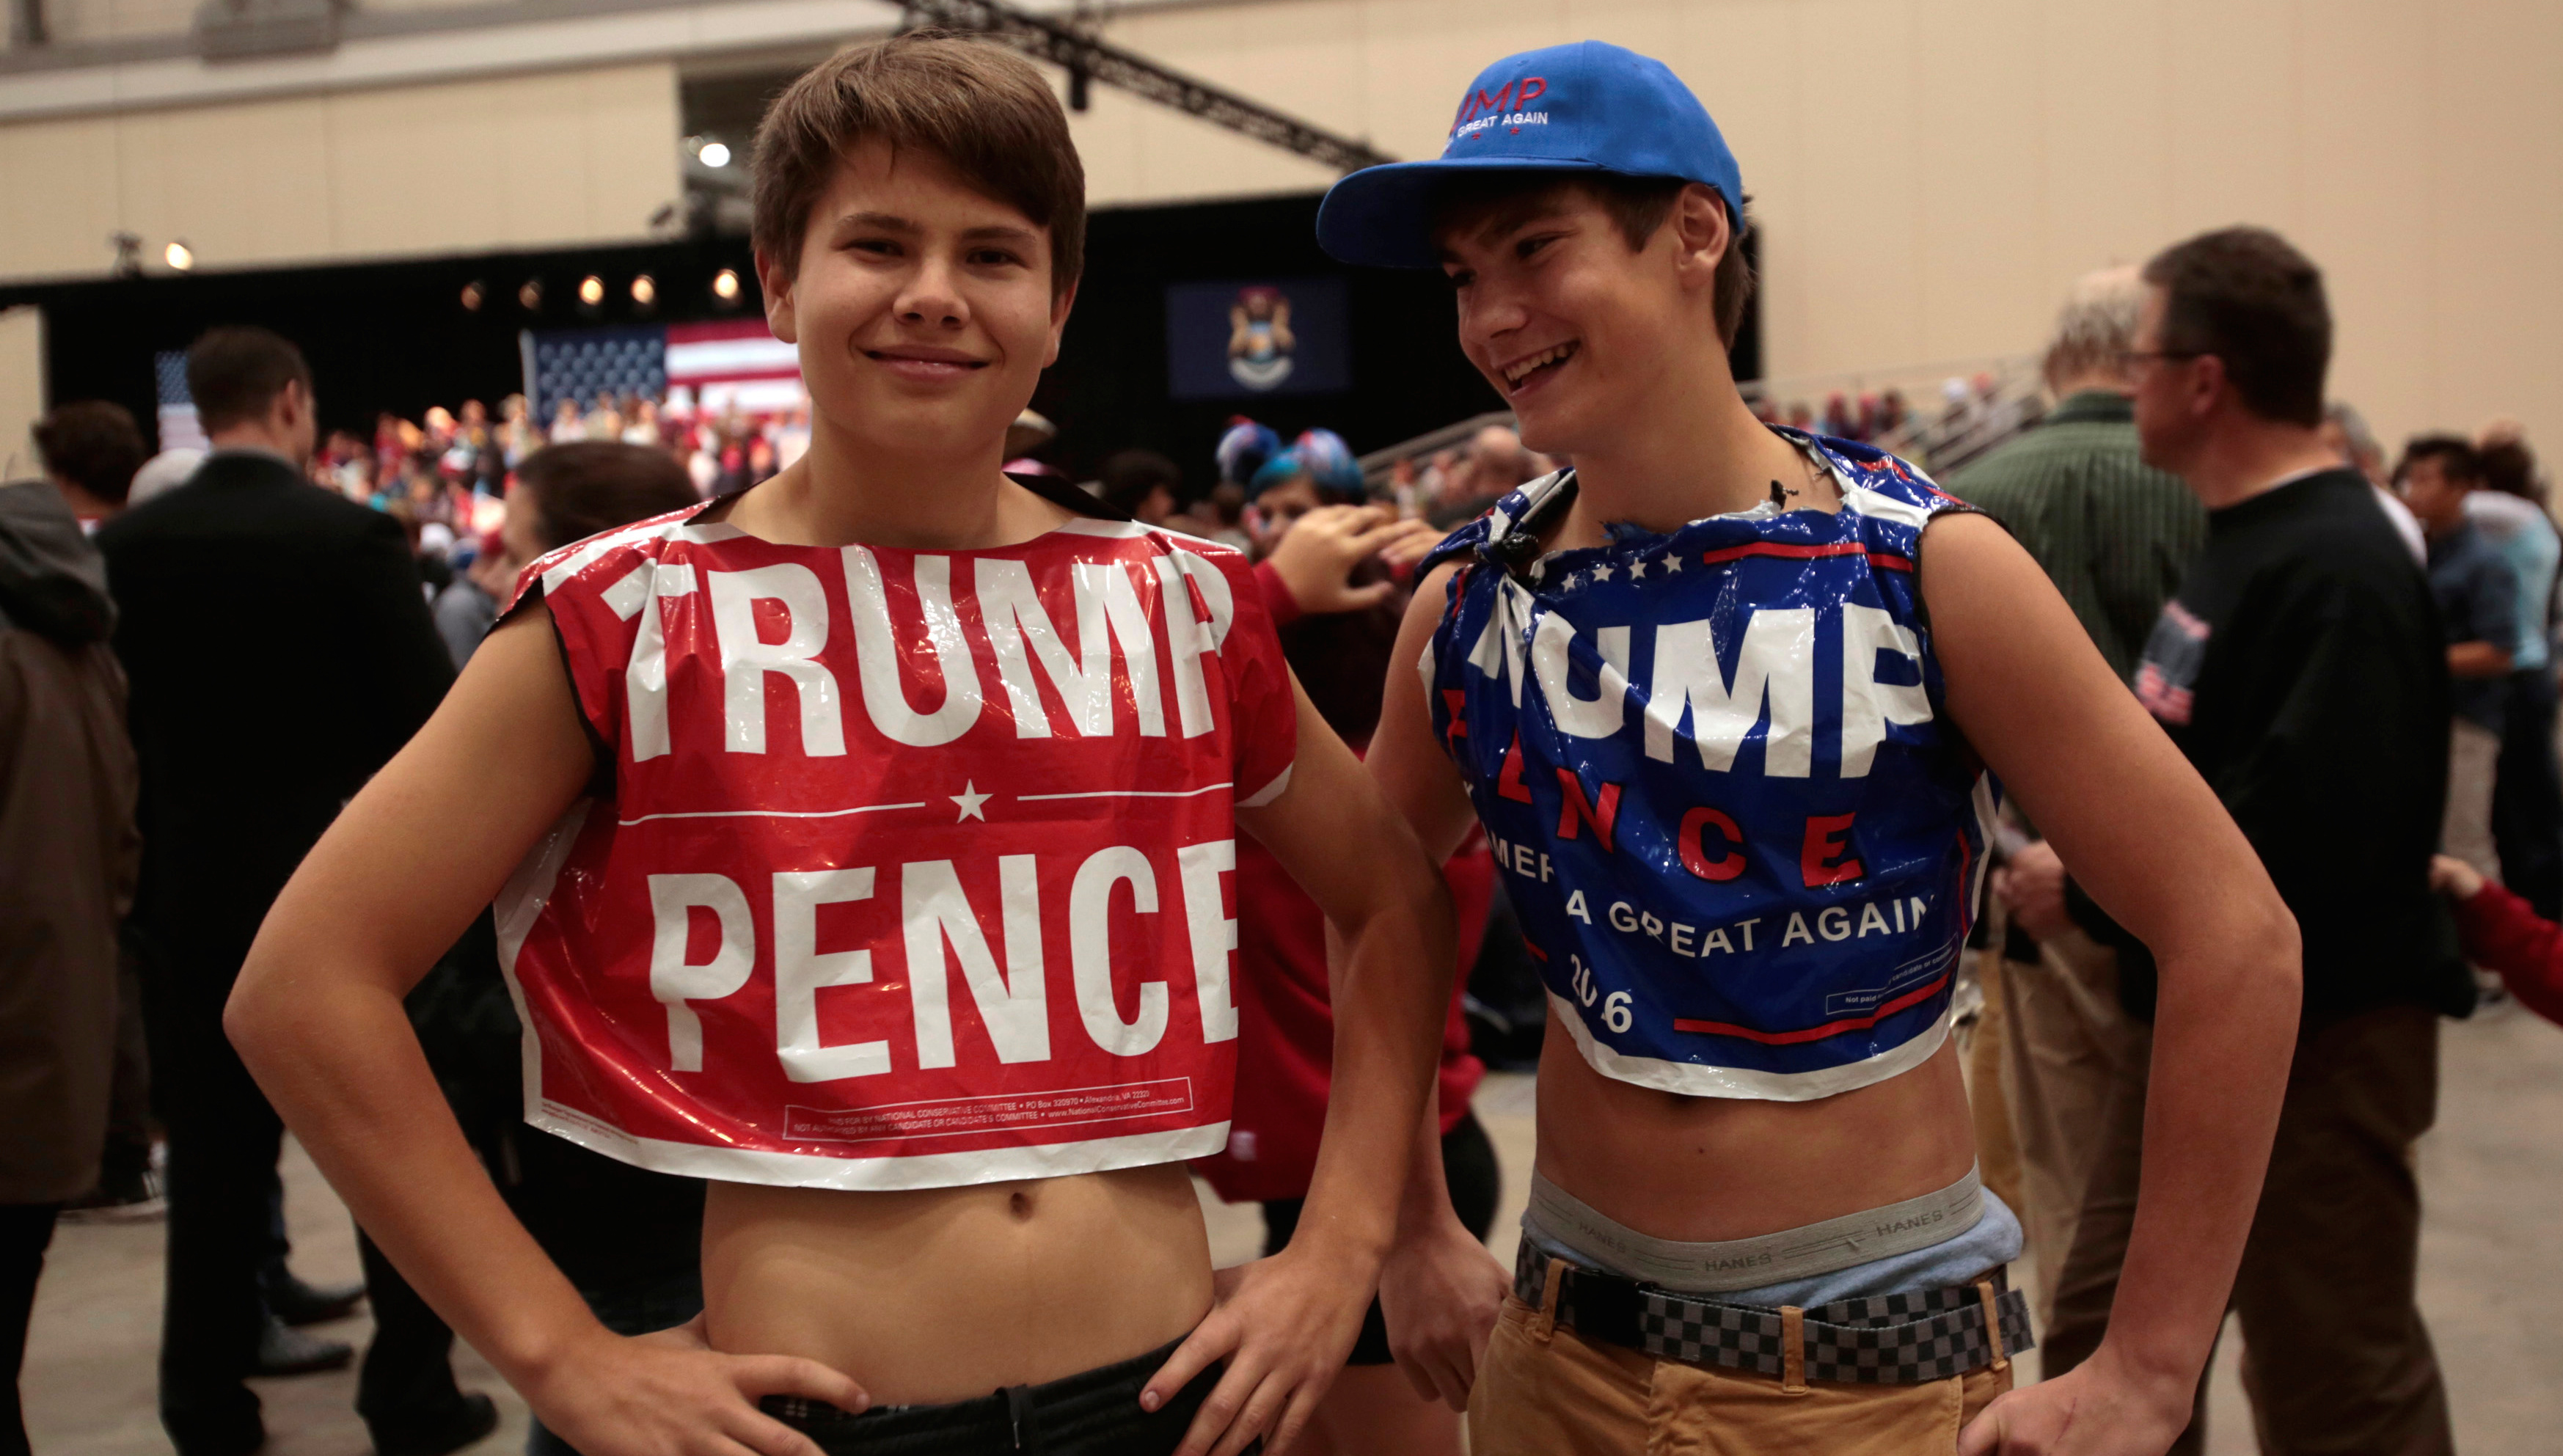 U.S. Republican presidential nominee Donald Trump supporters Mick Ventocilla (L) and Nick Giddings come dressed as 'campaign lawn signs' to hear Trump speak at the Devos Place in Grand Rapids, Michigan November 7, 2016.